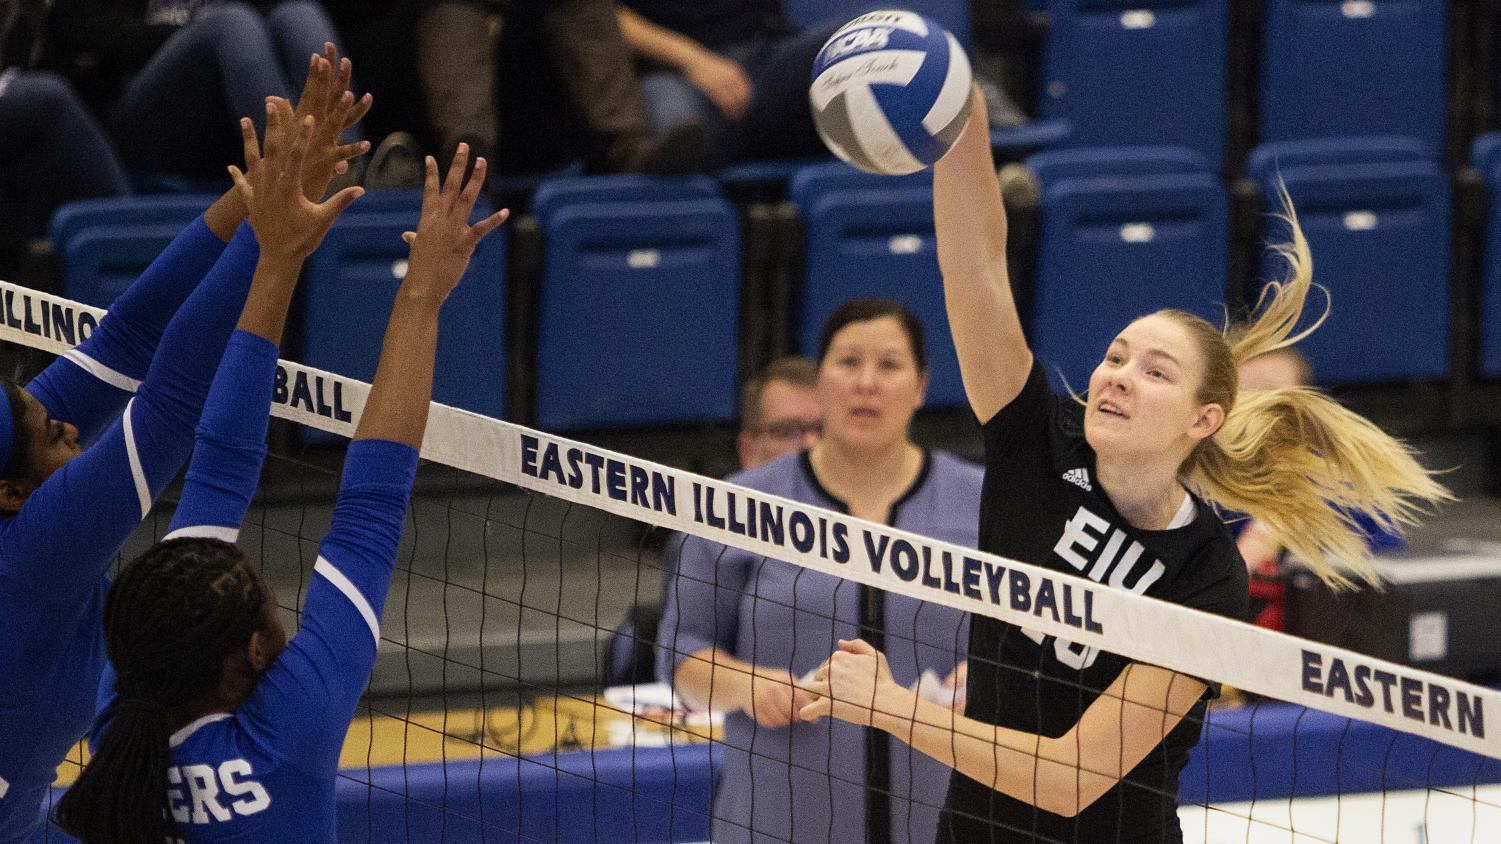 Eastern senior Maggie Runge makes contact on a kill attempt against Tennessee State on Nov. 9 in Lantz Arena. The Panthers lost the match 3-1. Runge recorded 11 kills and led the team with 13 points.